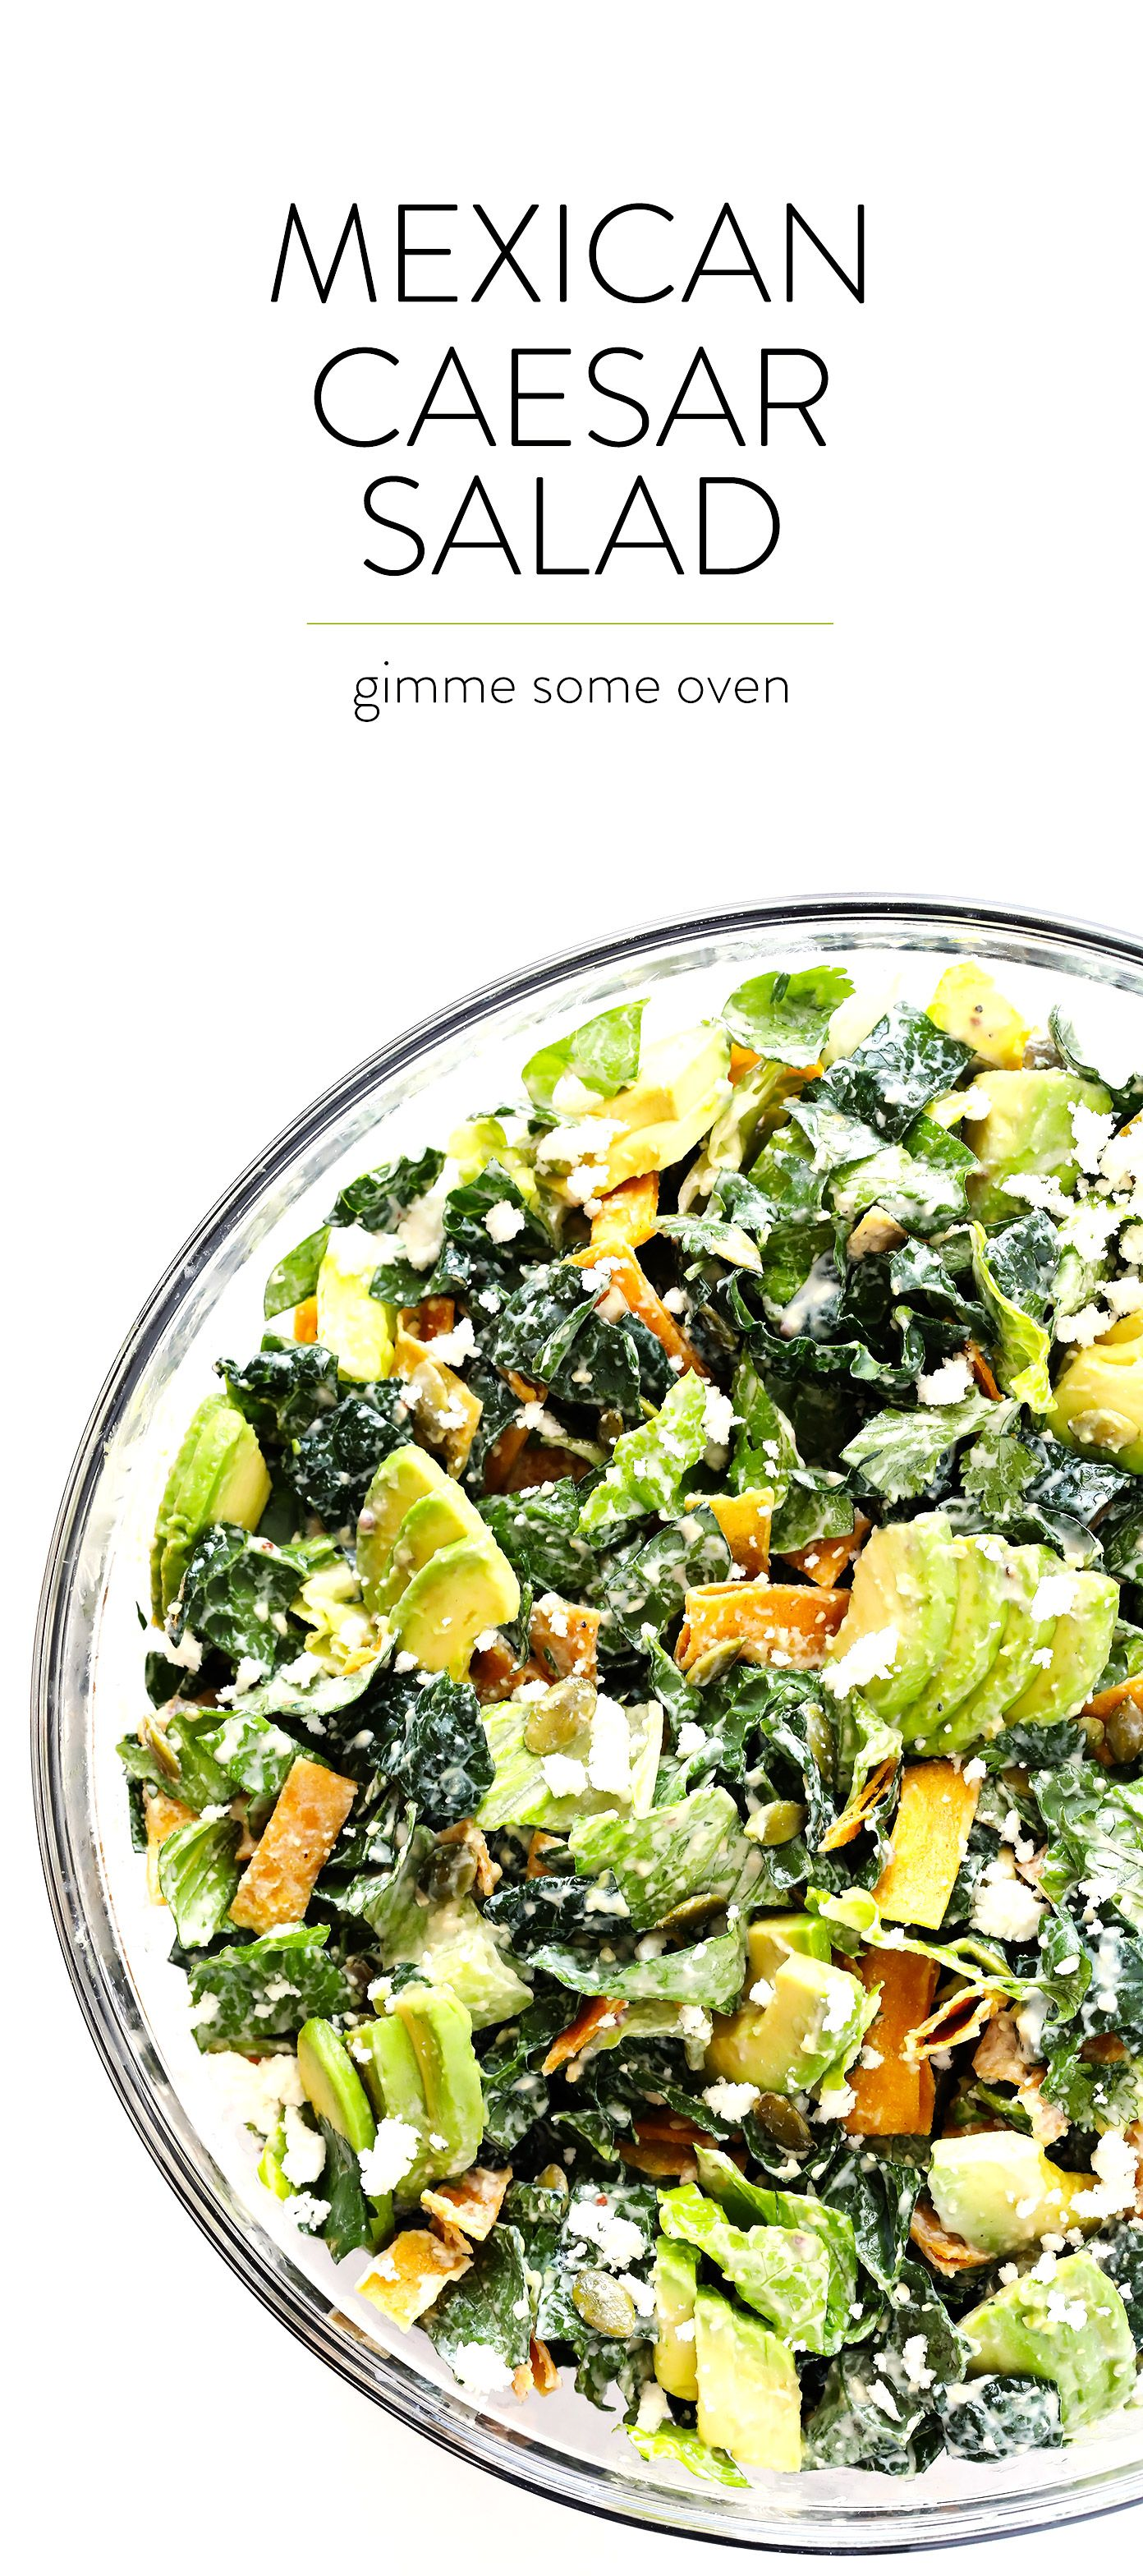 Photo of Mexican Caesar Salad | Gimme Some Oven